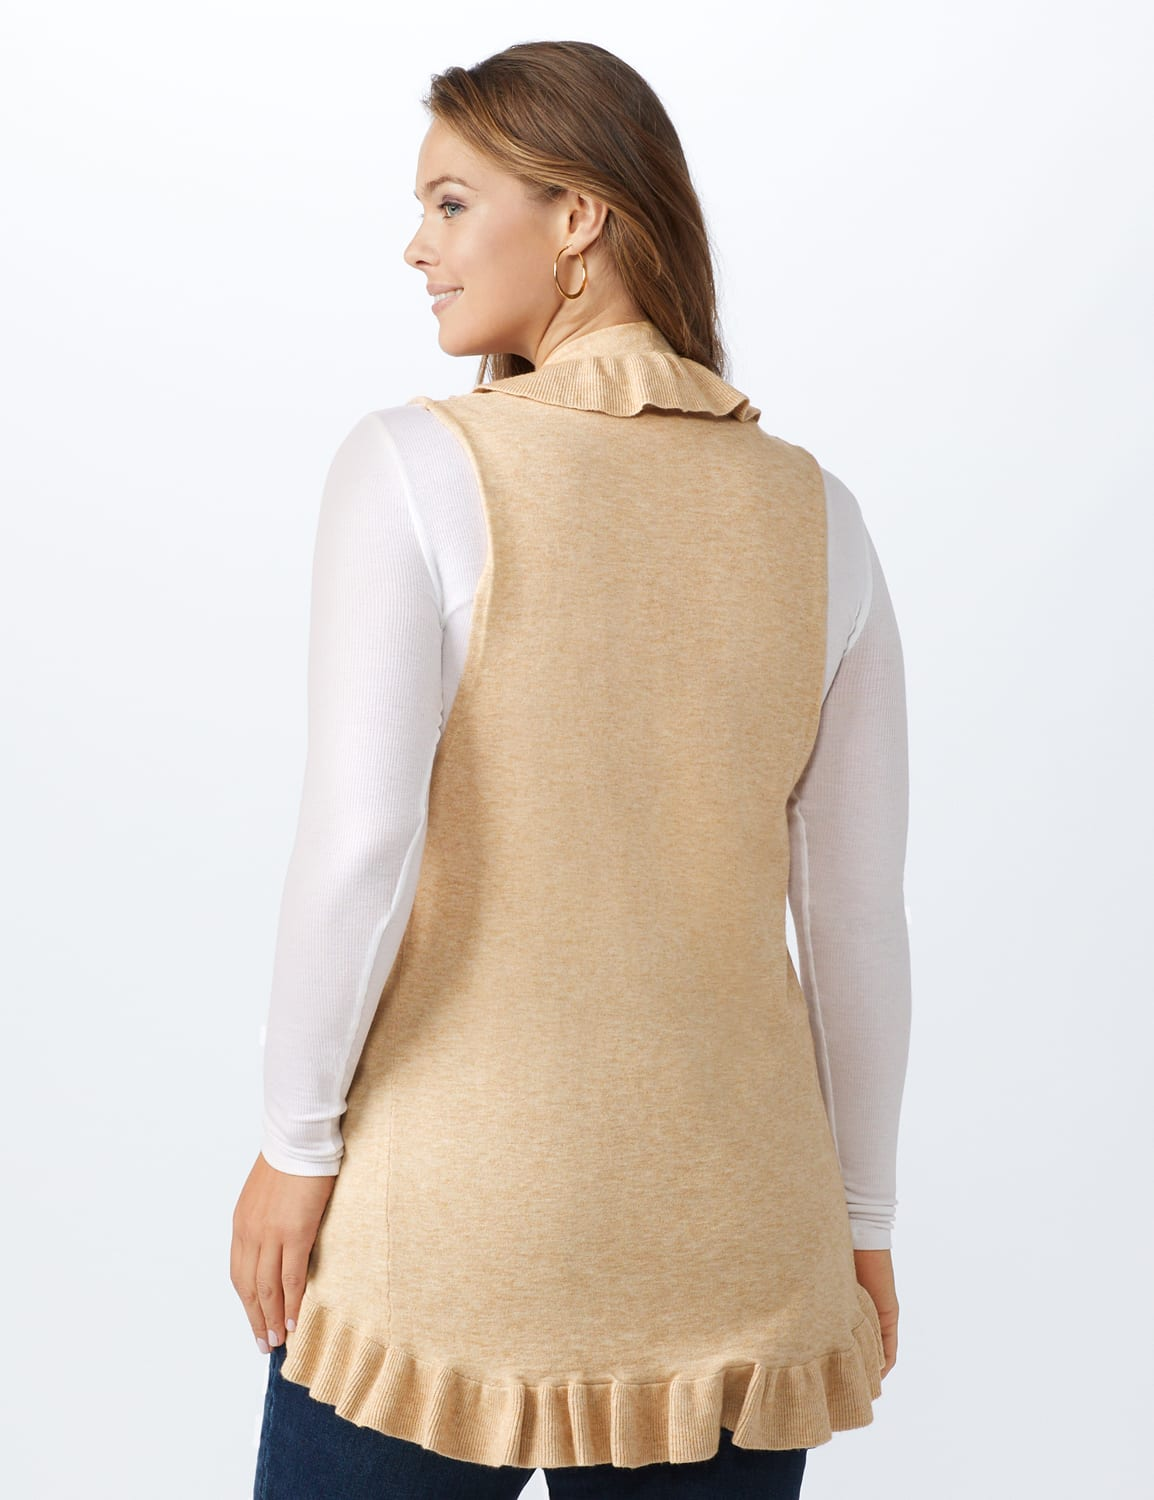 Roz & Ali Ruffle Sweater Vest - Plus - Oatmeal - Back